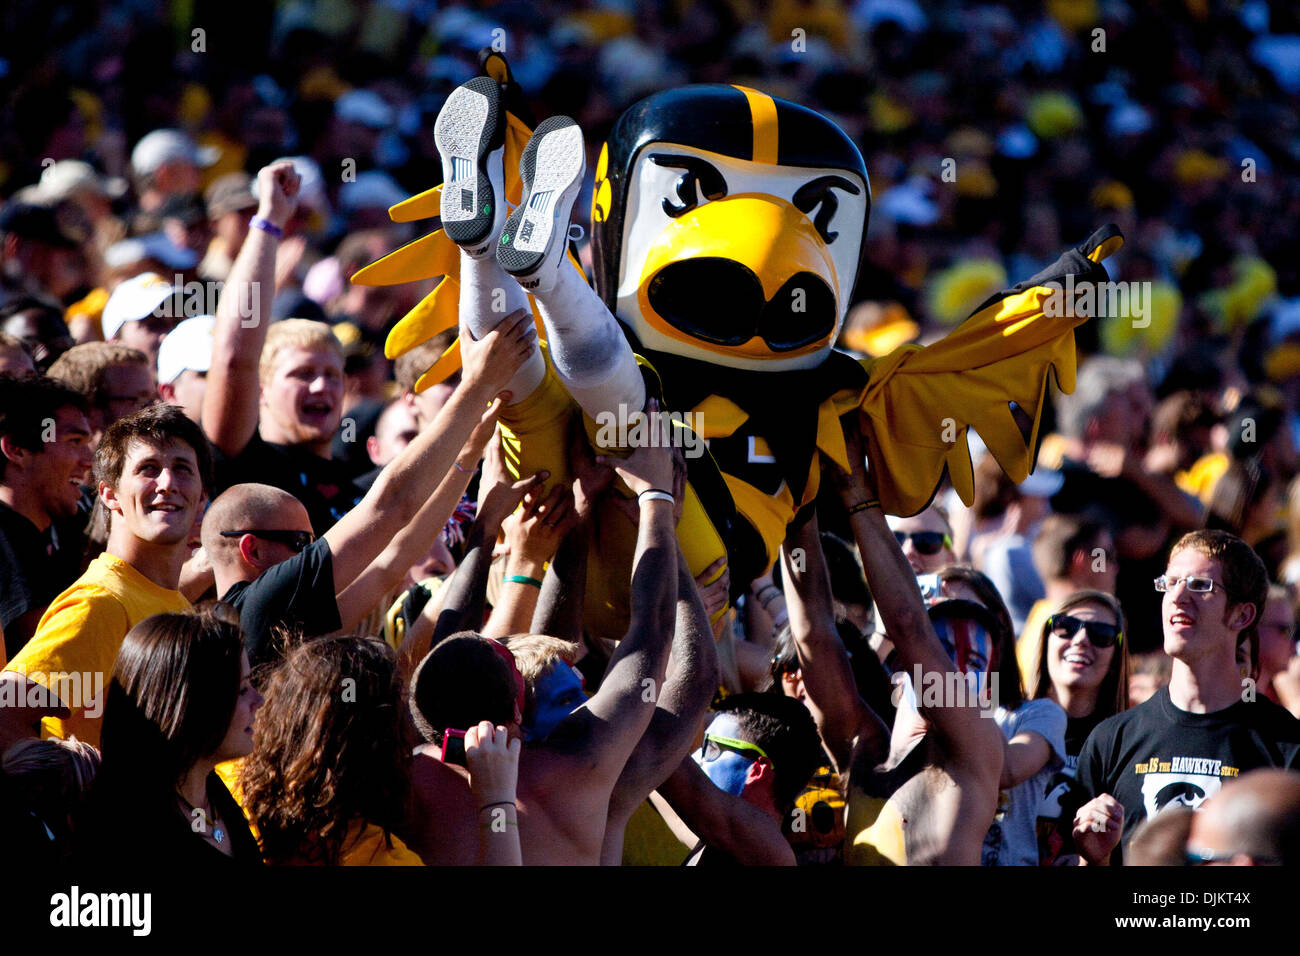 Sept. 11, 2010 - Iowa City, Iowa, United States of America - Herky the Hawkeye crowd surfs during Iowa's big 35-7 win over instate rival Iowa State on Sept. 11, 2010, at Kinnick Stadium in Iowa, City, Ia (Credit Image: © Louis Brems/Southcreek Global/ZUMApress.com) - Stock Image